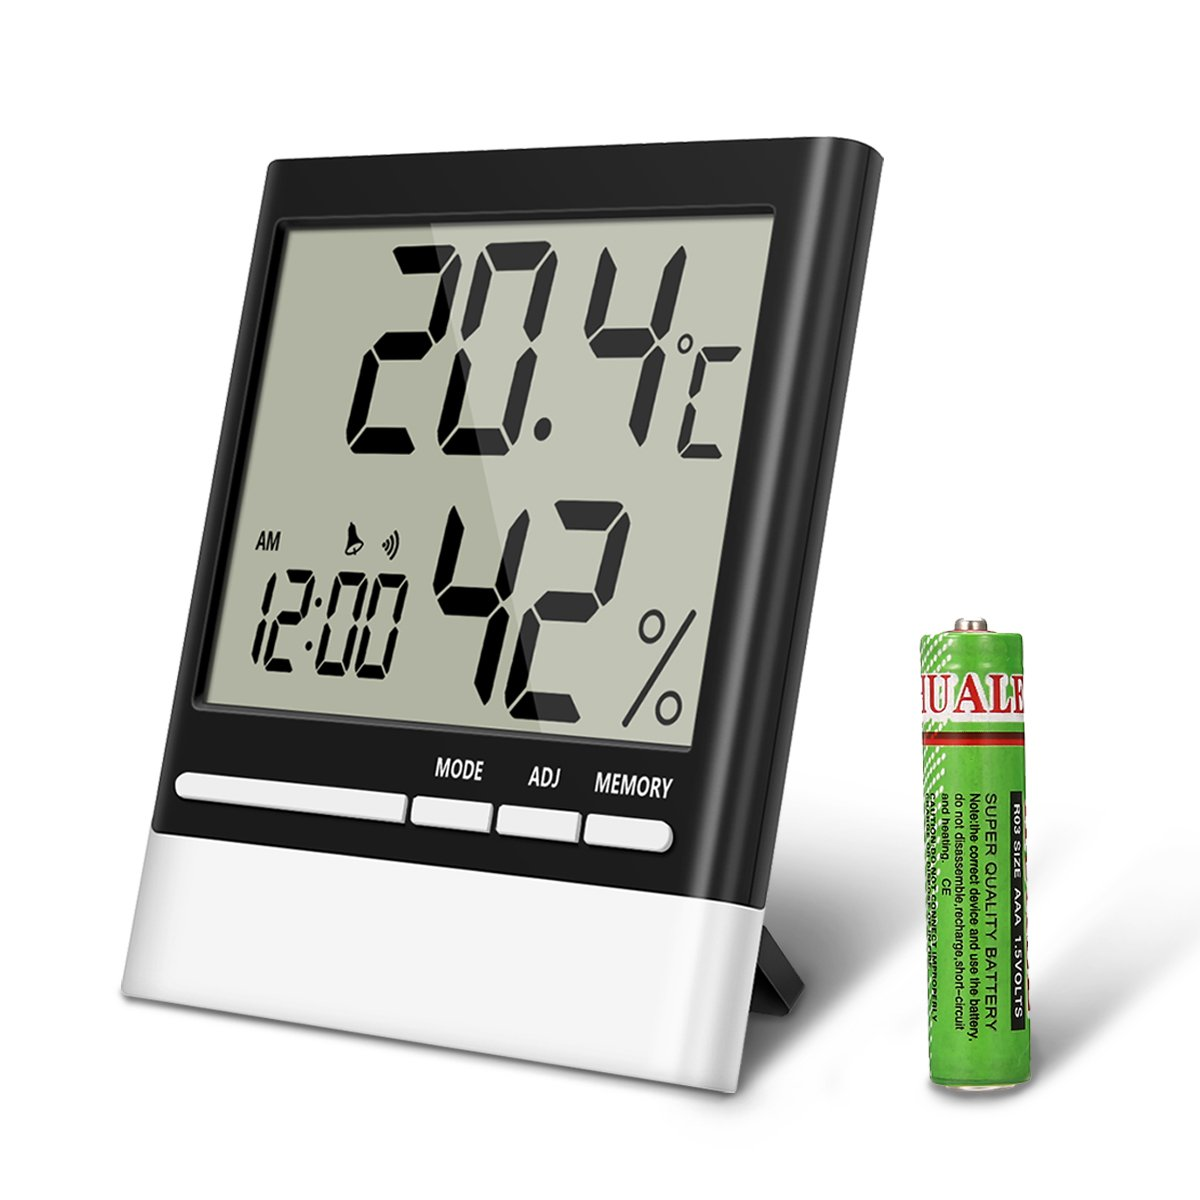 EIVOTOR Temperature Hygrometer, Indoor Thermometers Humidity Monitor LCD Display, Home Digital Dual Wall Alarm Clock Day, Date - Battery Included EIVOTORPORO65KE159